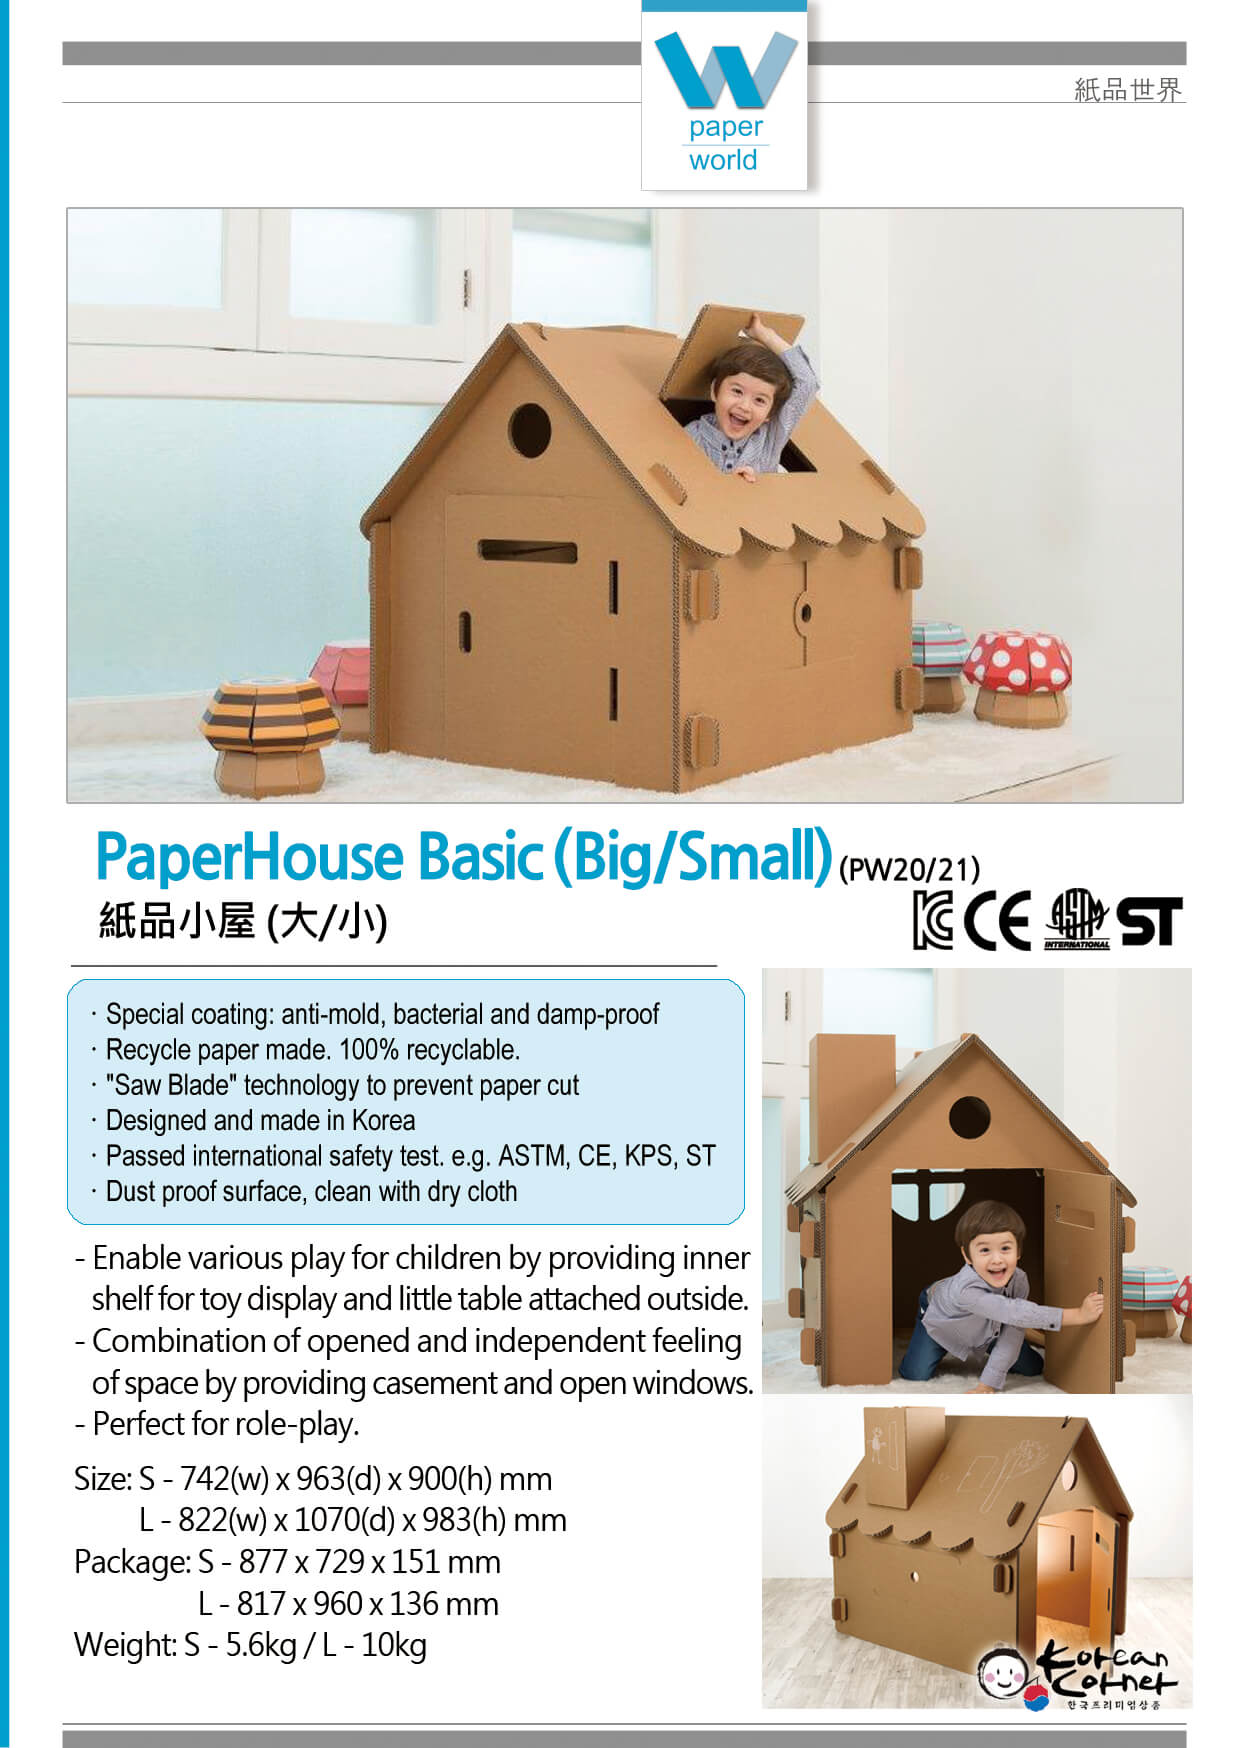 PaperHouse Basic